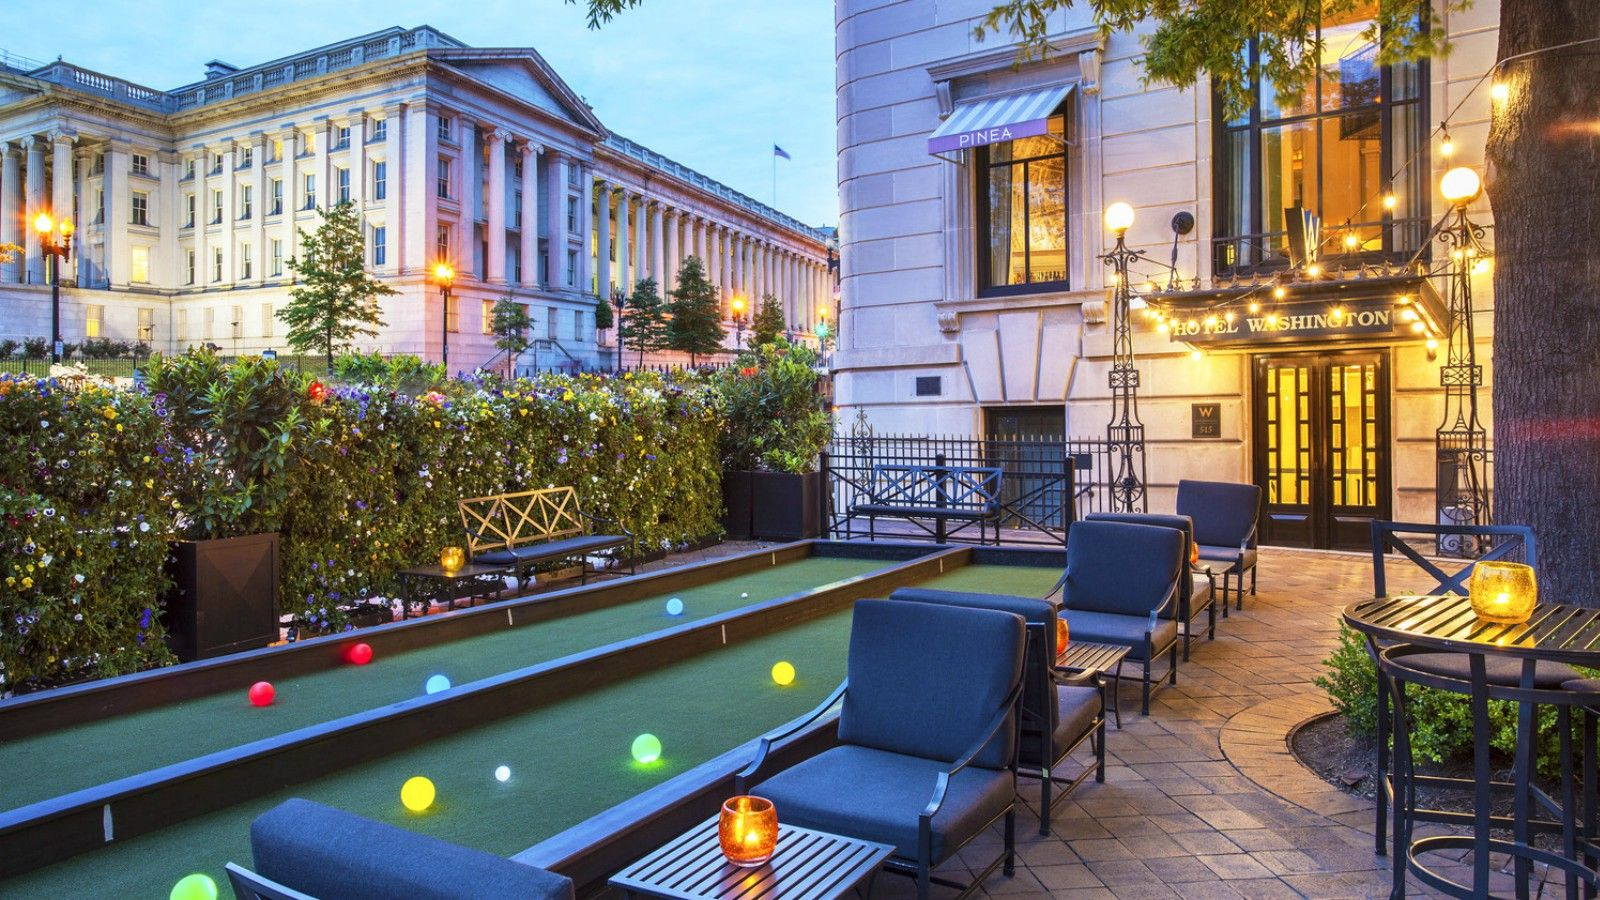 W Washington D.C. - Pinea Patio - Evening